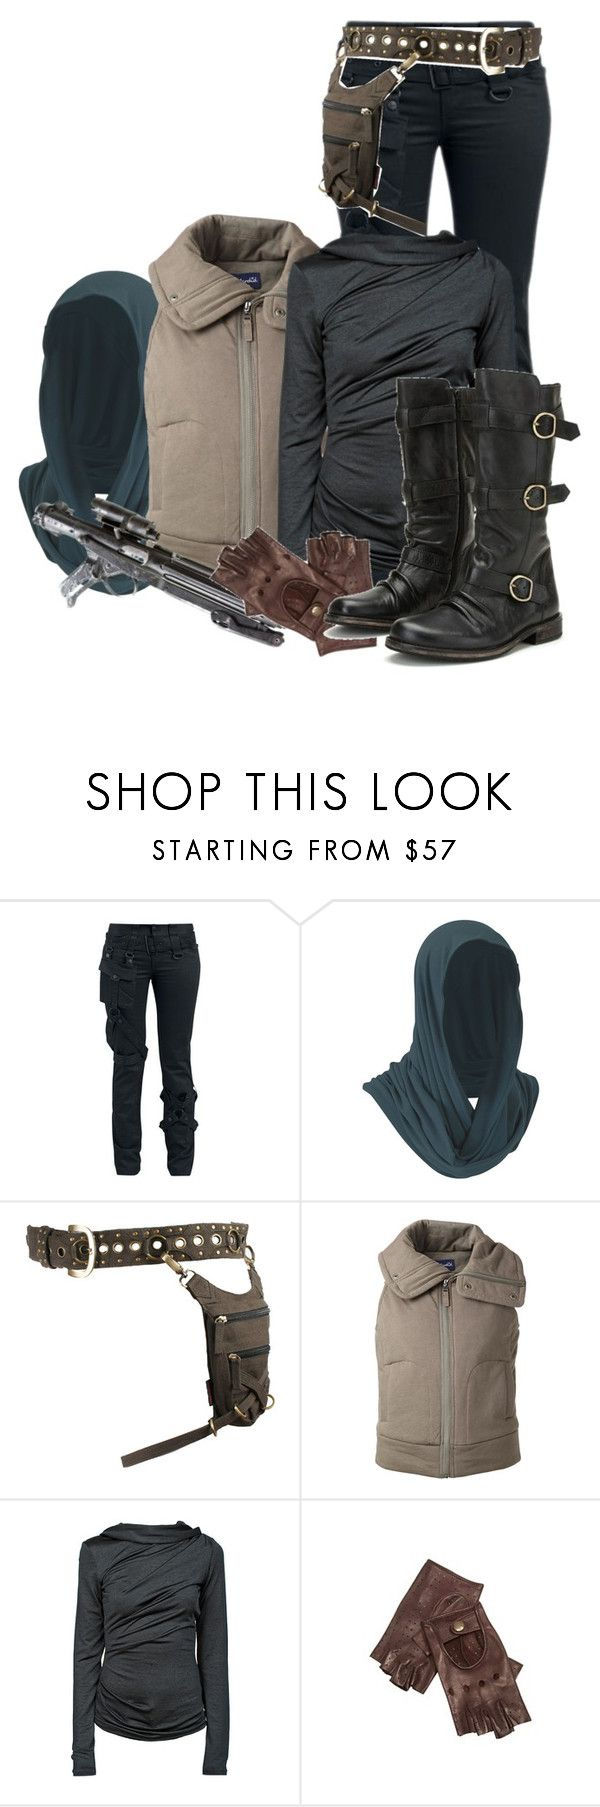 """""""Jyn Erso"""" by inspiredoutfitsfandoms ❤ liked on Polyvore featuring Splendid, T By Alexander Wang, Episode, Alexander McQueen and Bronx"""